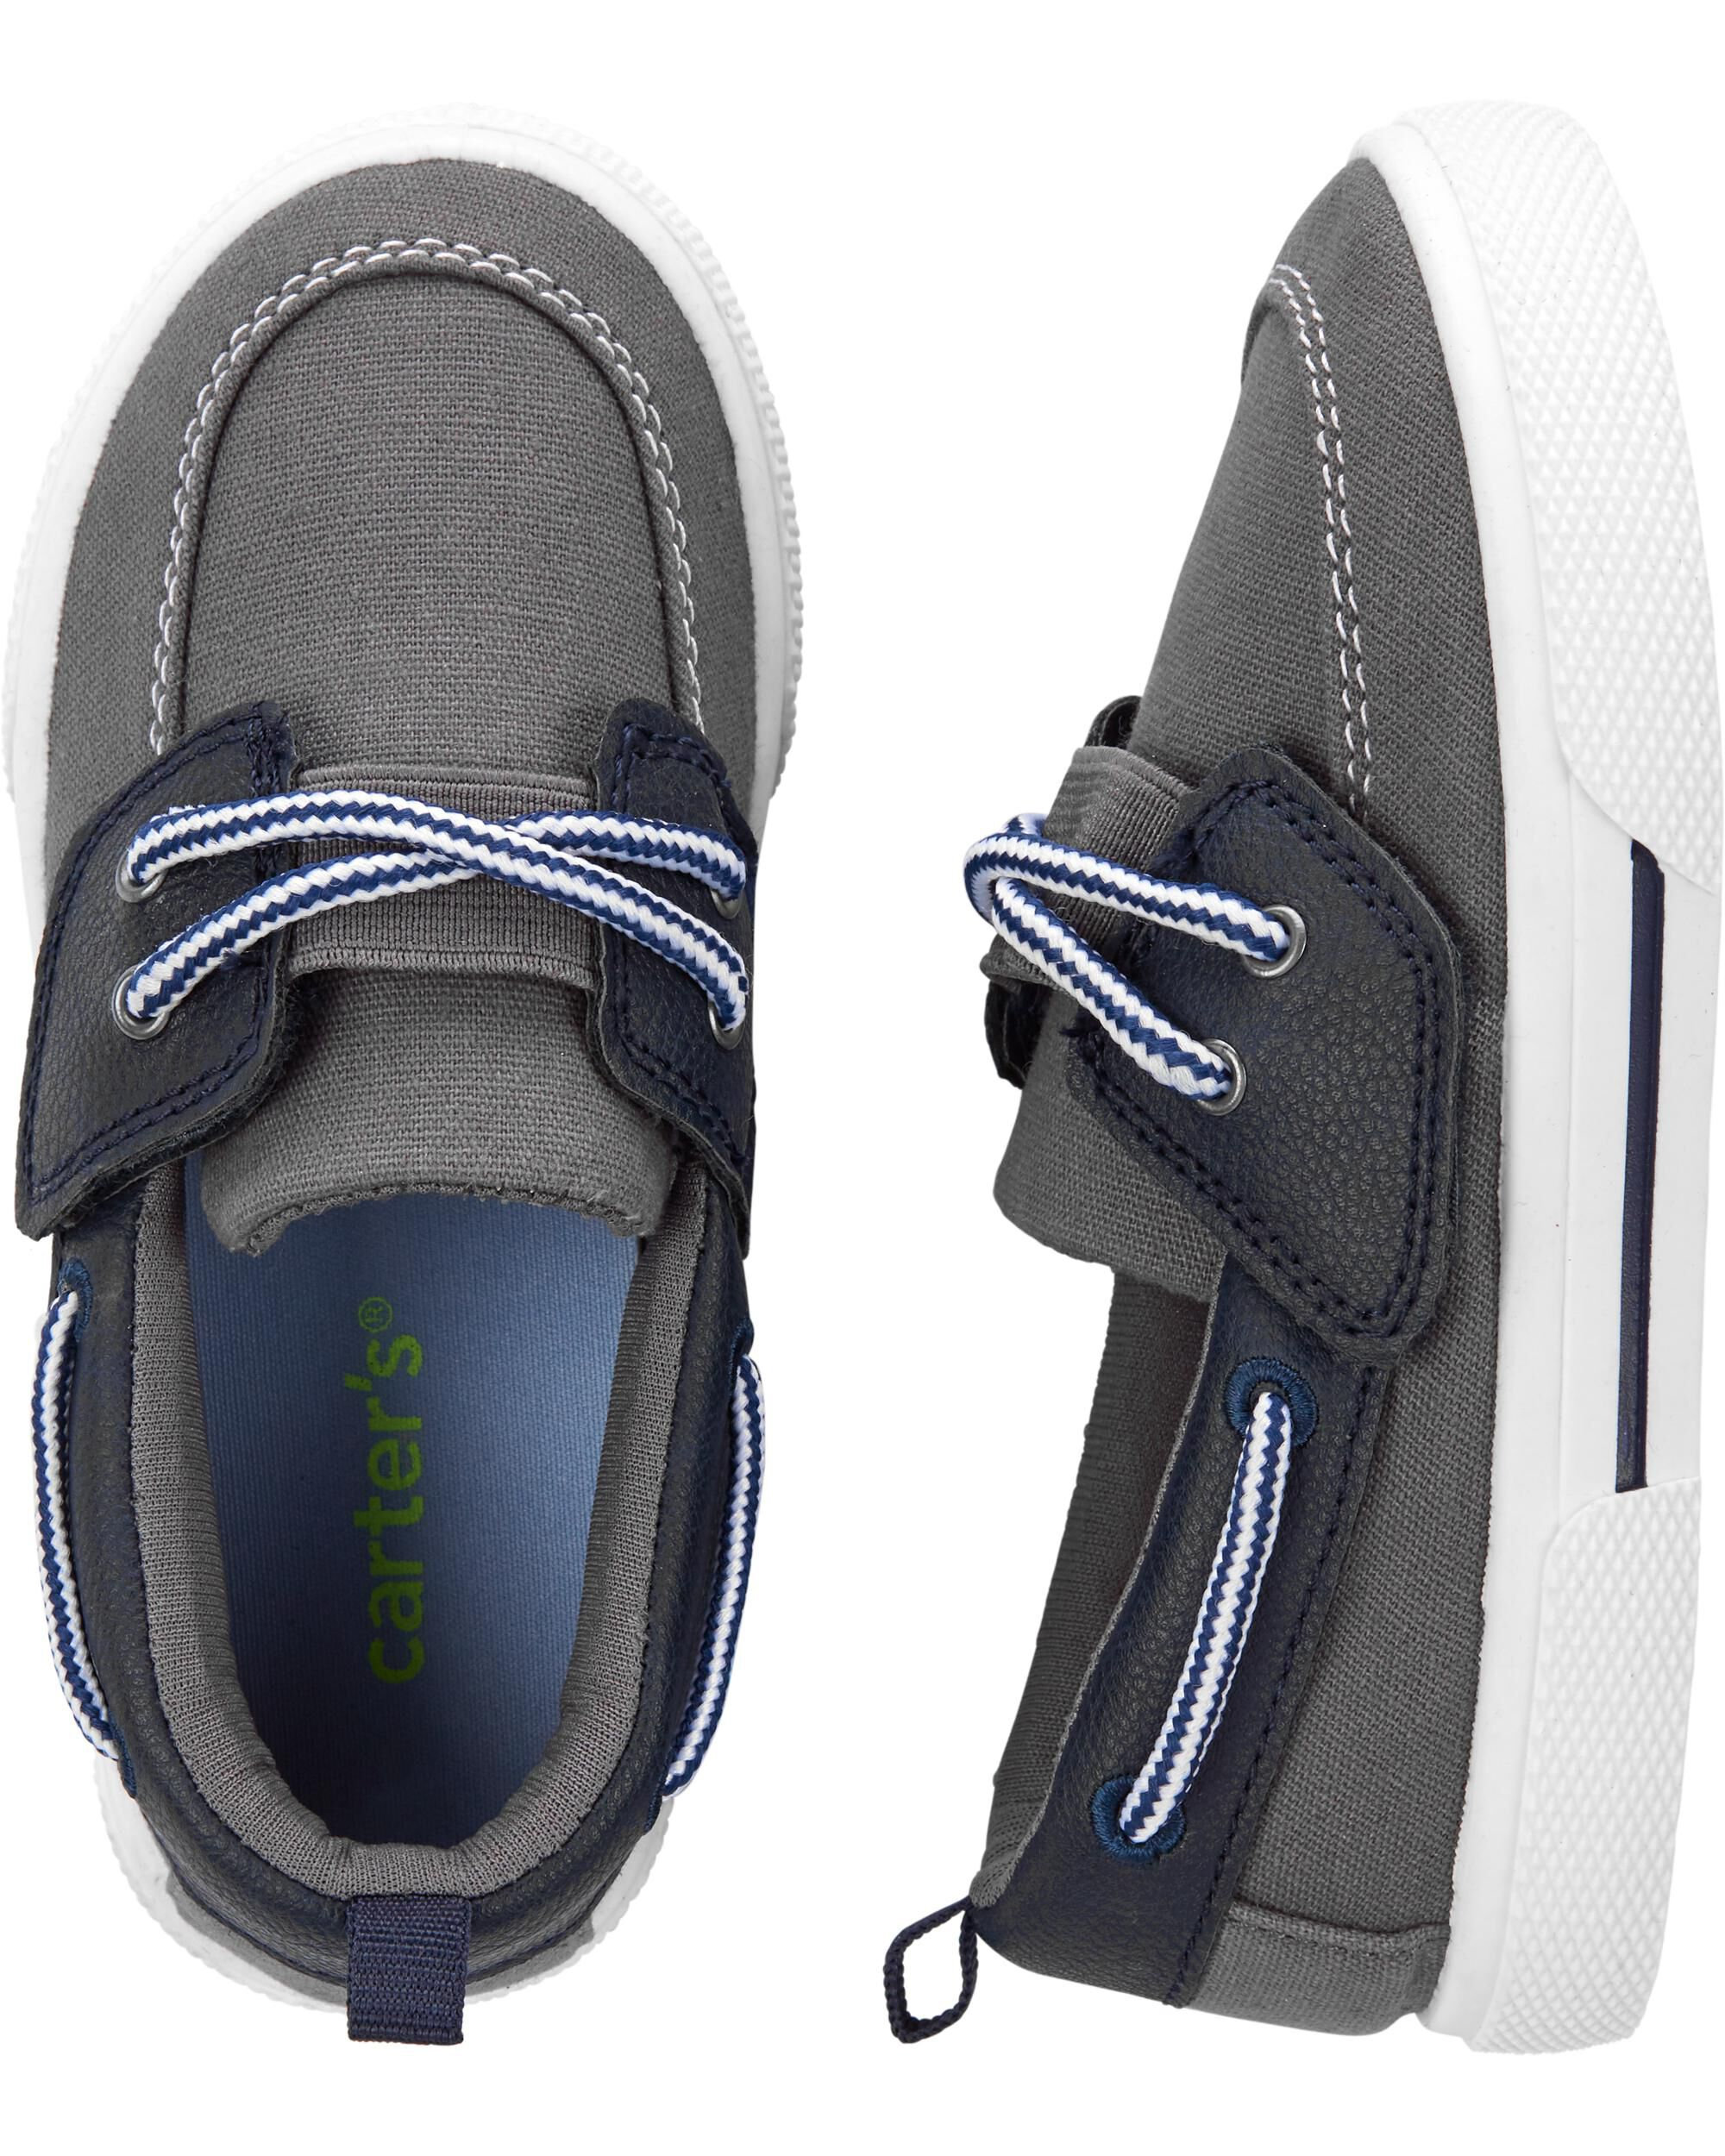 *CLEARANCE* Carter's Boat Shoes